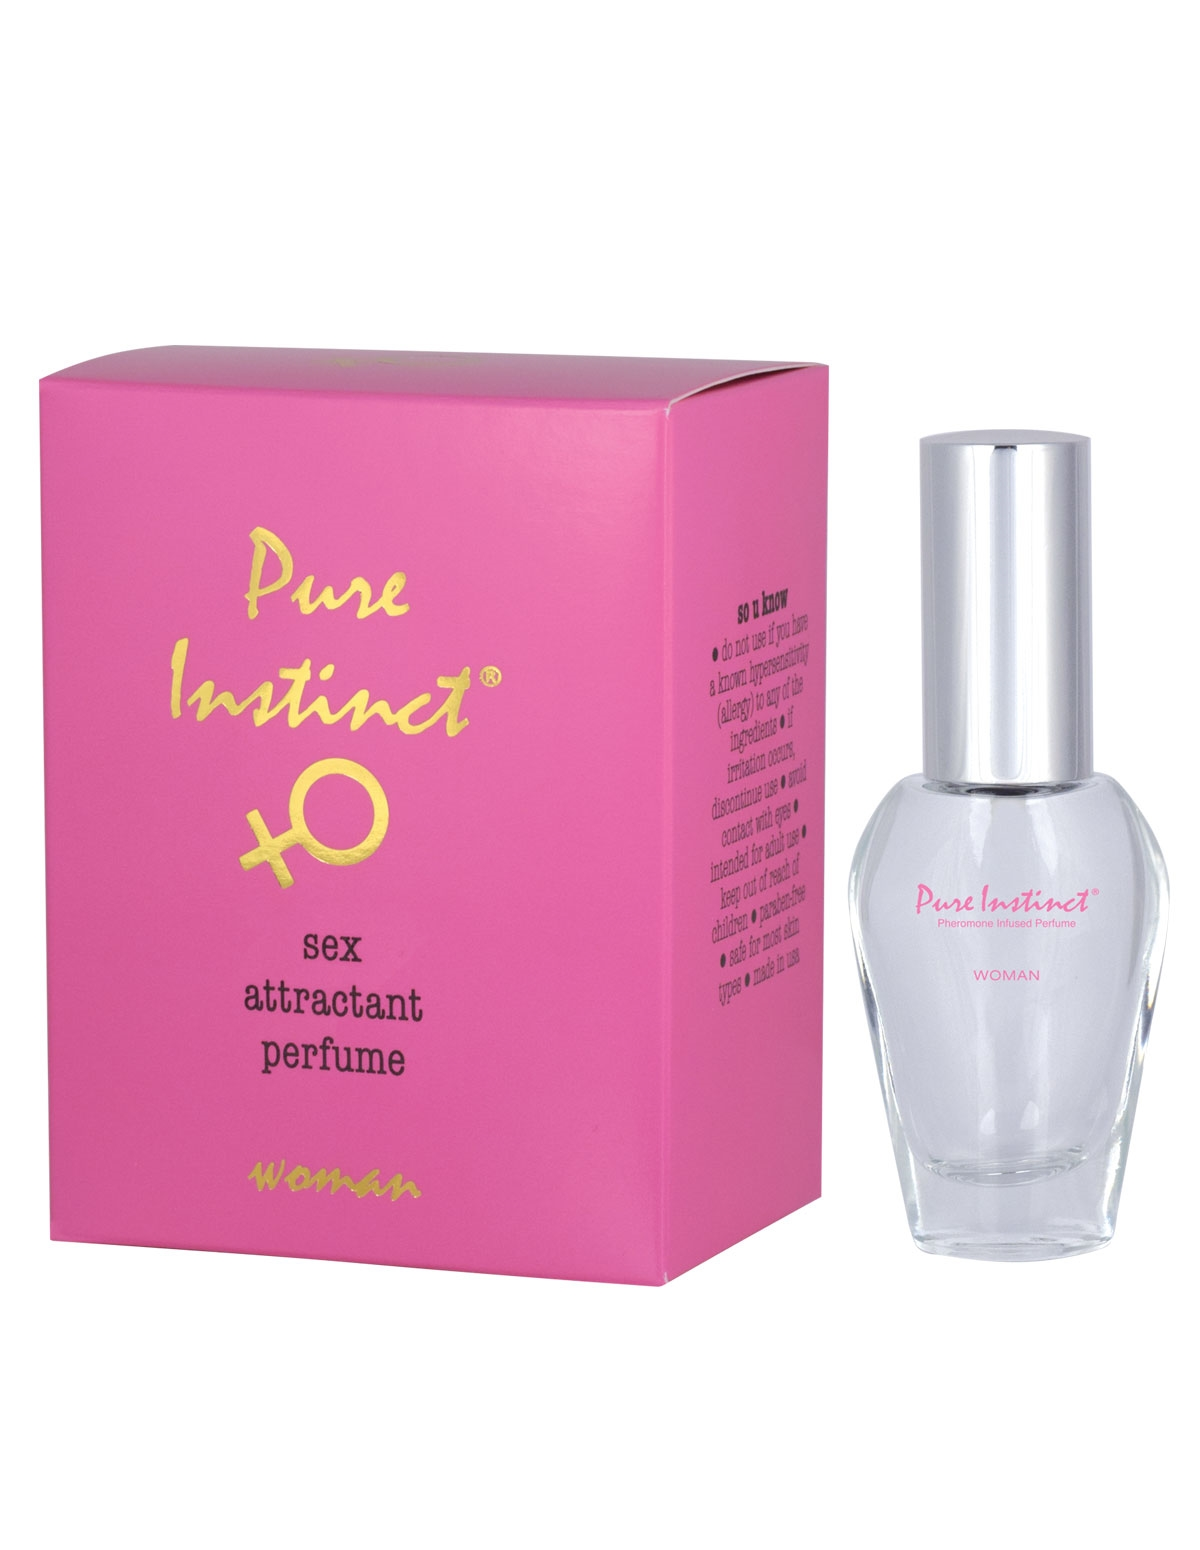 Pure Instinct Pheromone Infused Perfume For Her